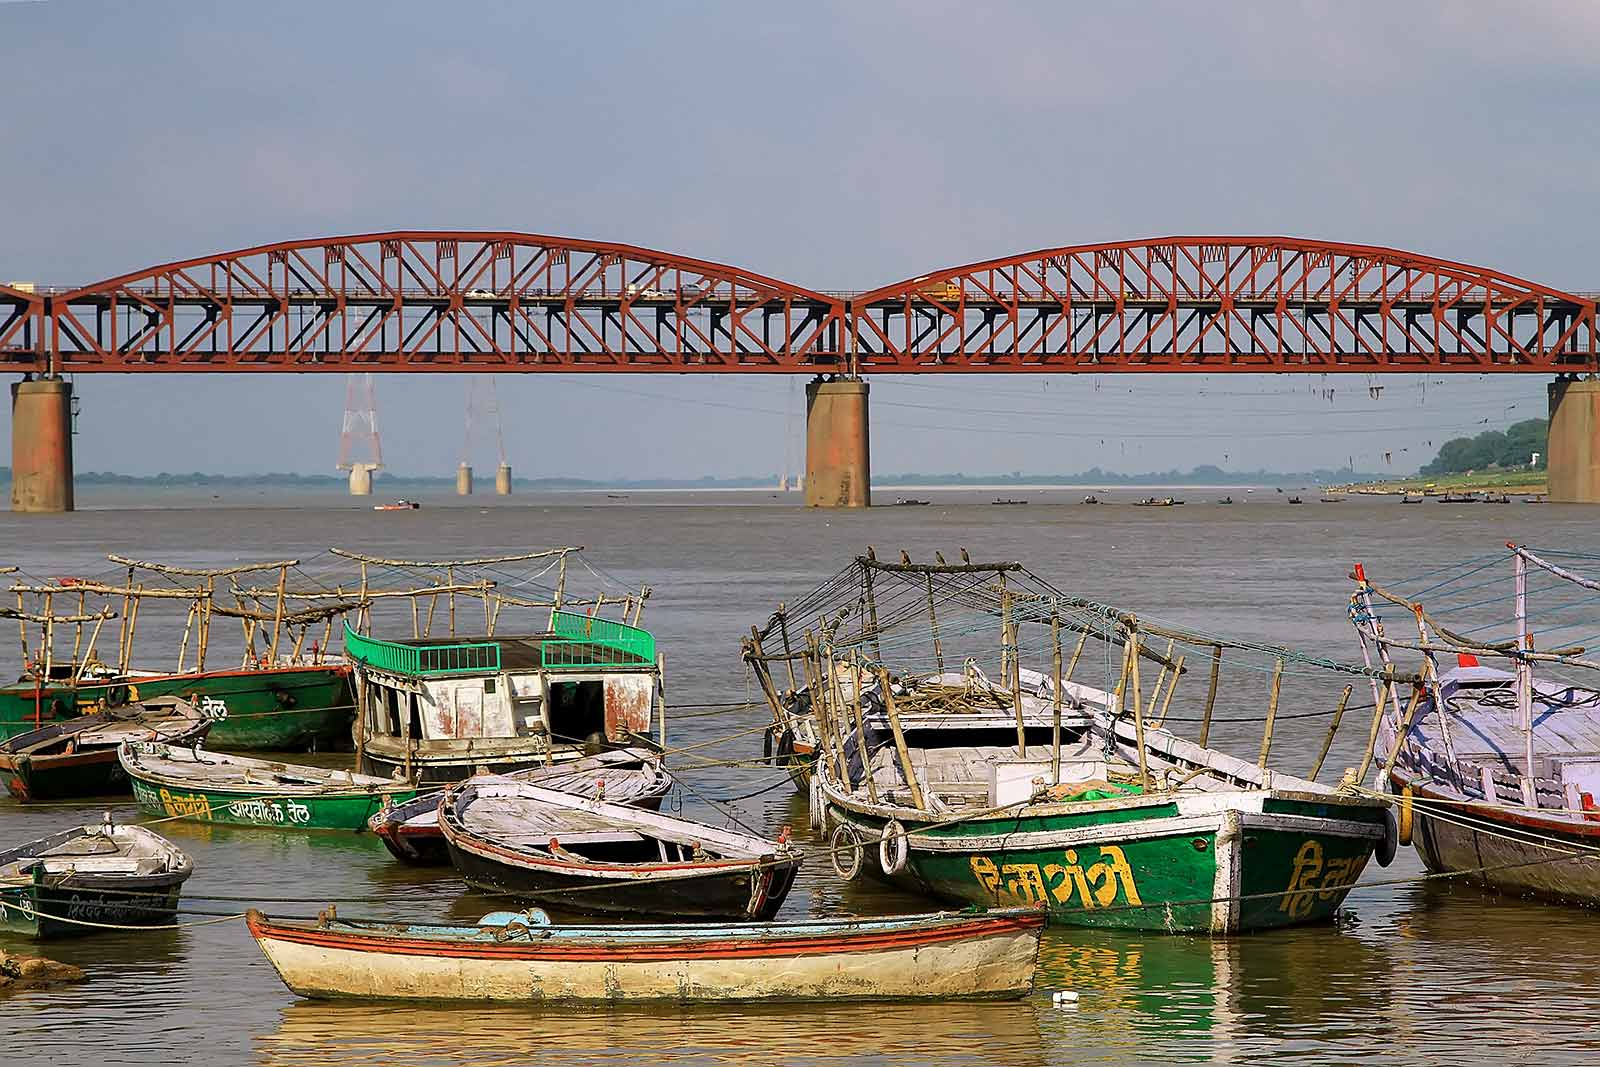 Malviya Bridge in Varanasi, which was inaugurated in 1887 (originally called The Dufferin Bridge), is a double decker bridge over the Ganges river. It carries rail track on lower deck and road on the upper deck.